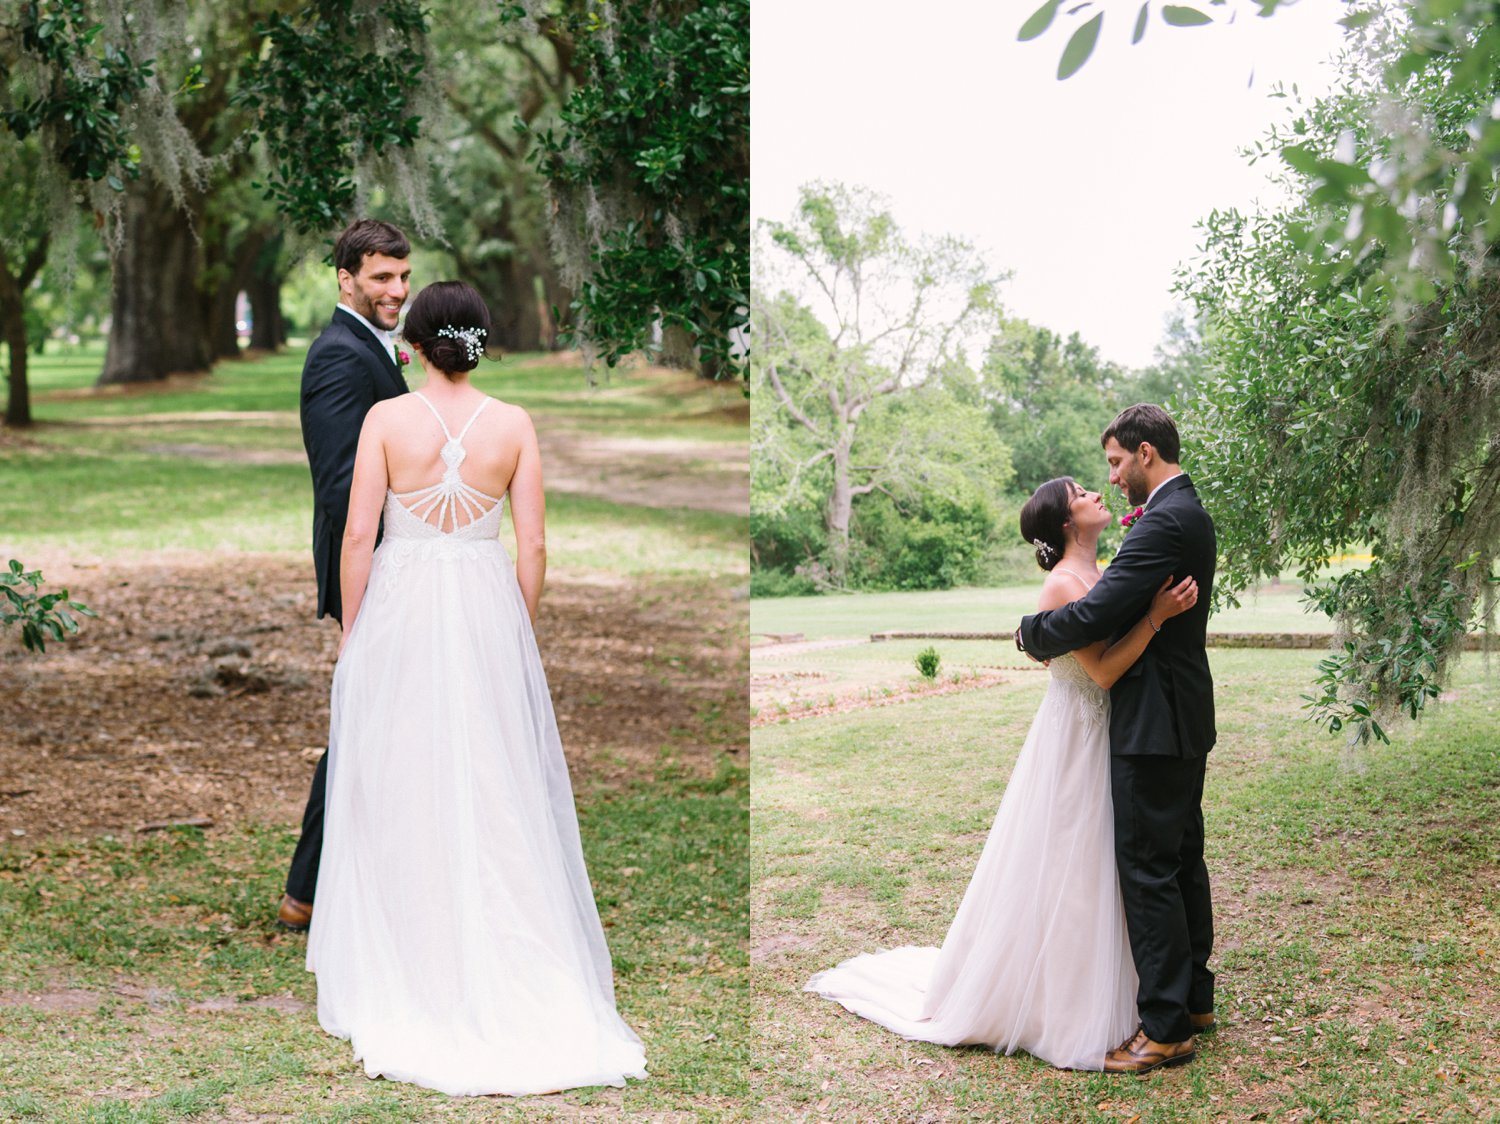 Lindsey_A_Miller_Photography_mcleod_plantation_wedding_charleston_south_carolina_clear_tent_spring_mod_events_027.jpg